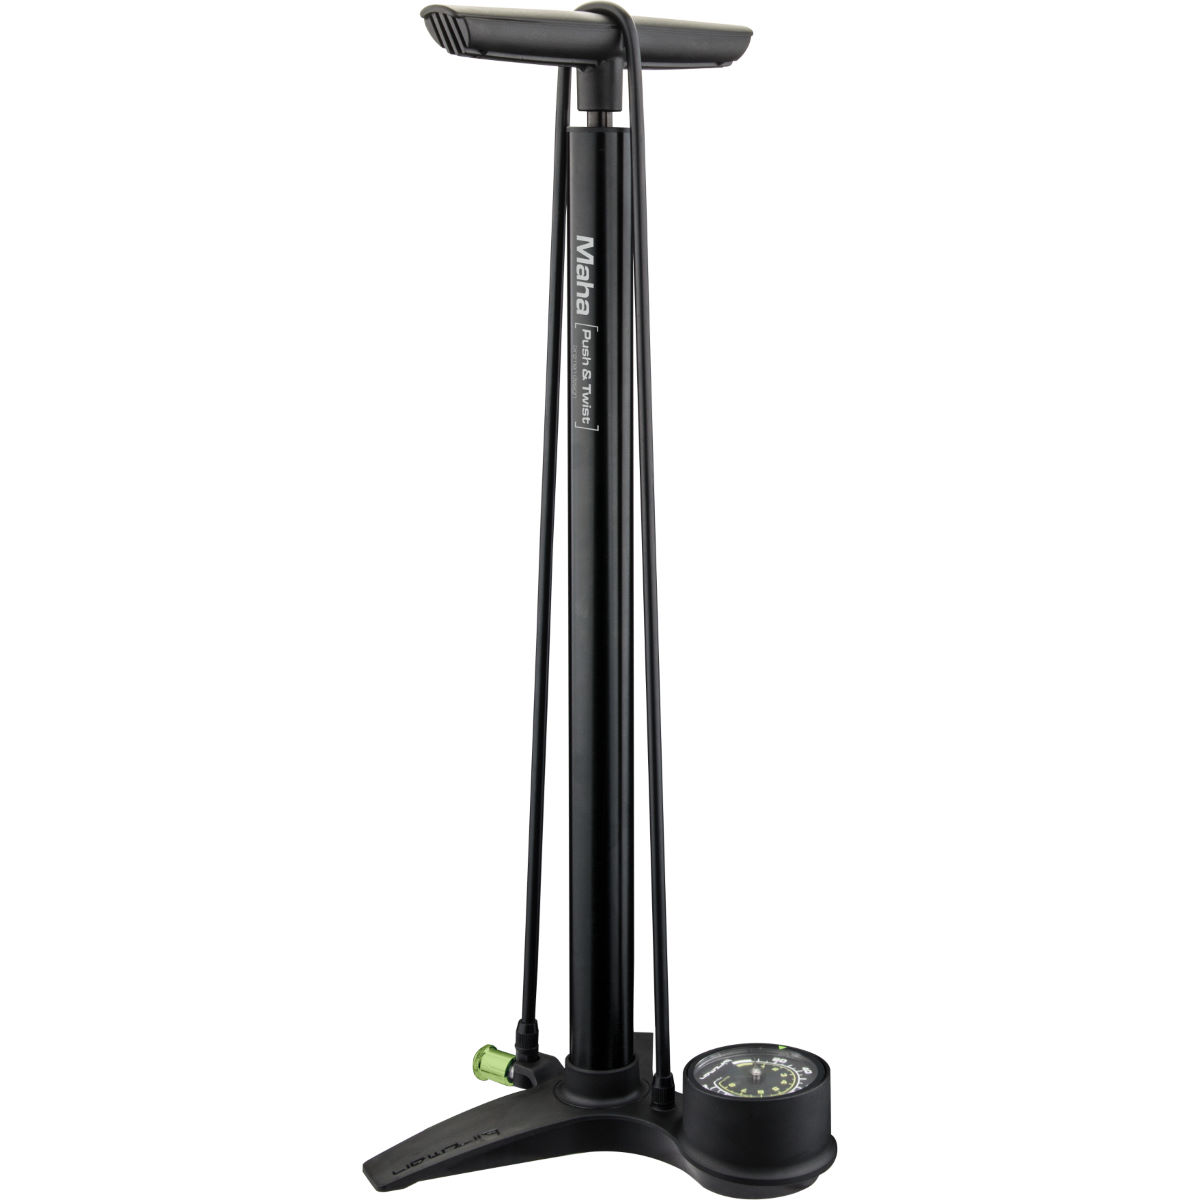 Birzman Maha Push & Twist MTB II Floor Pump - Bombas de pie